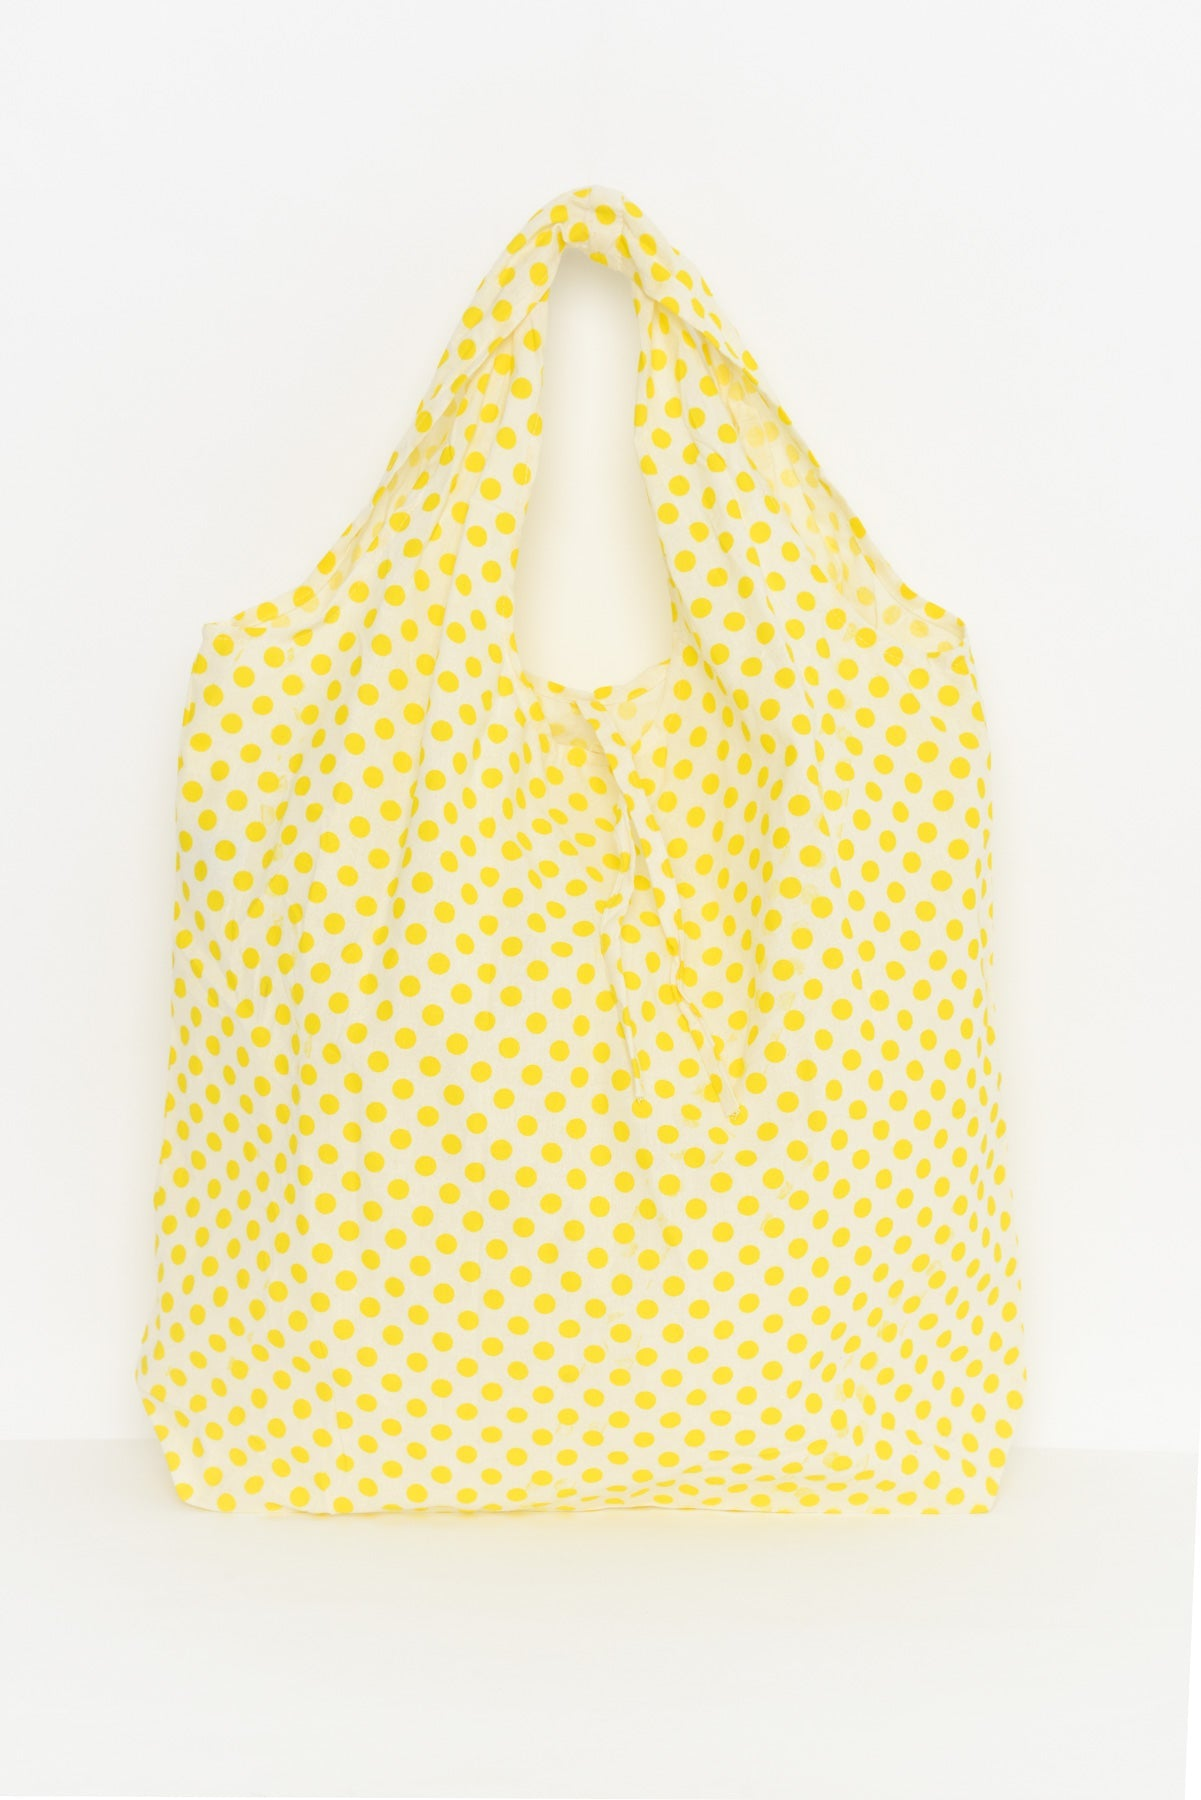 Mana Yellow Spot Eco Bag - Eb Ive - Blue Bungalow Online